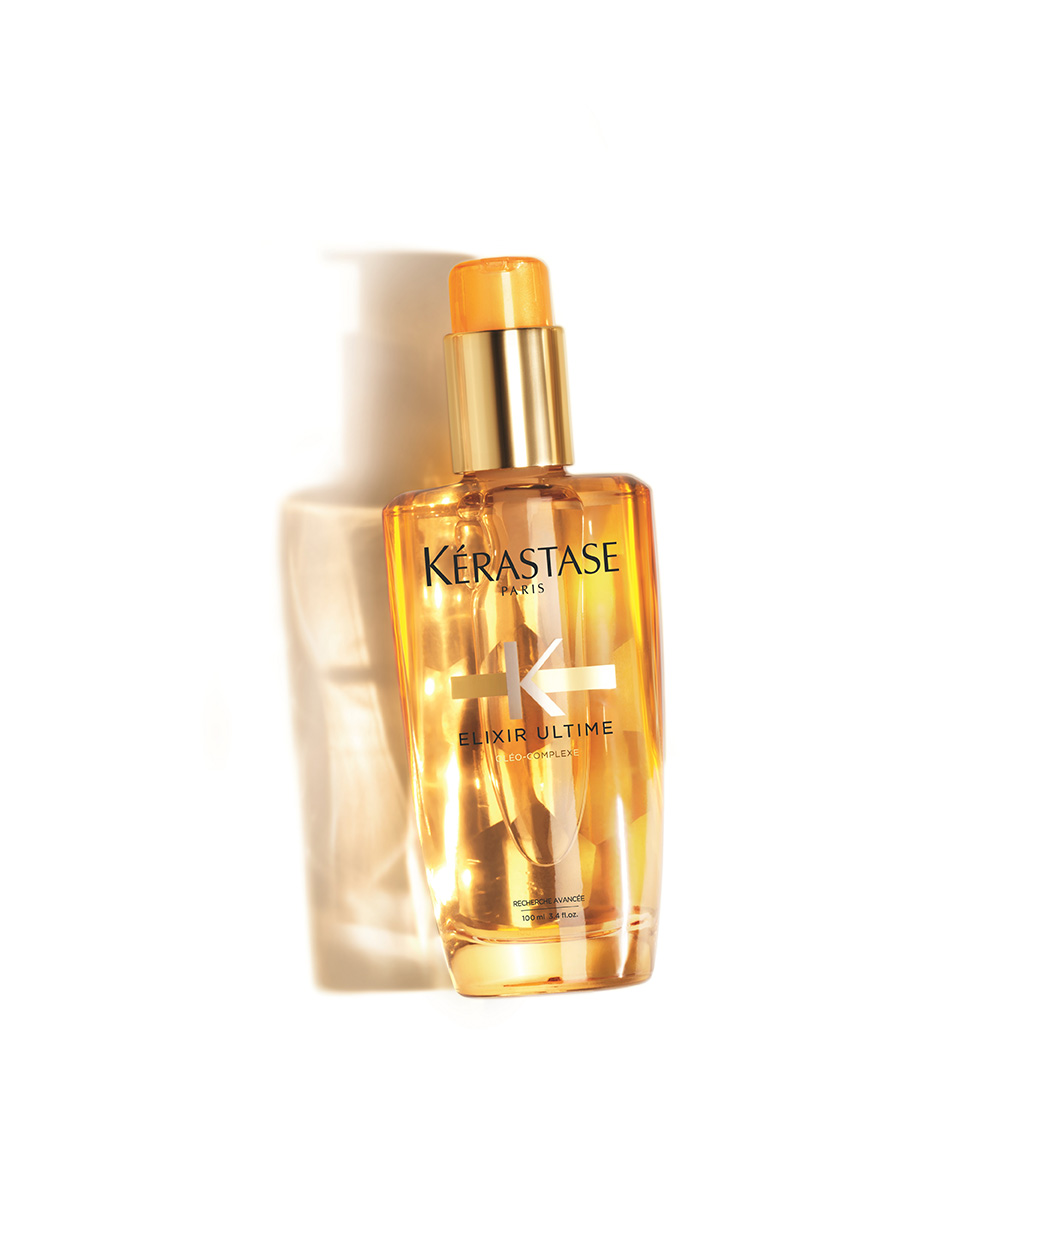 kerastase_elixir-ultime_secondaire_0324-3